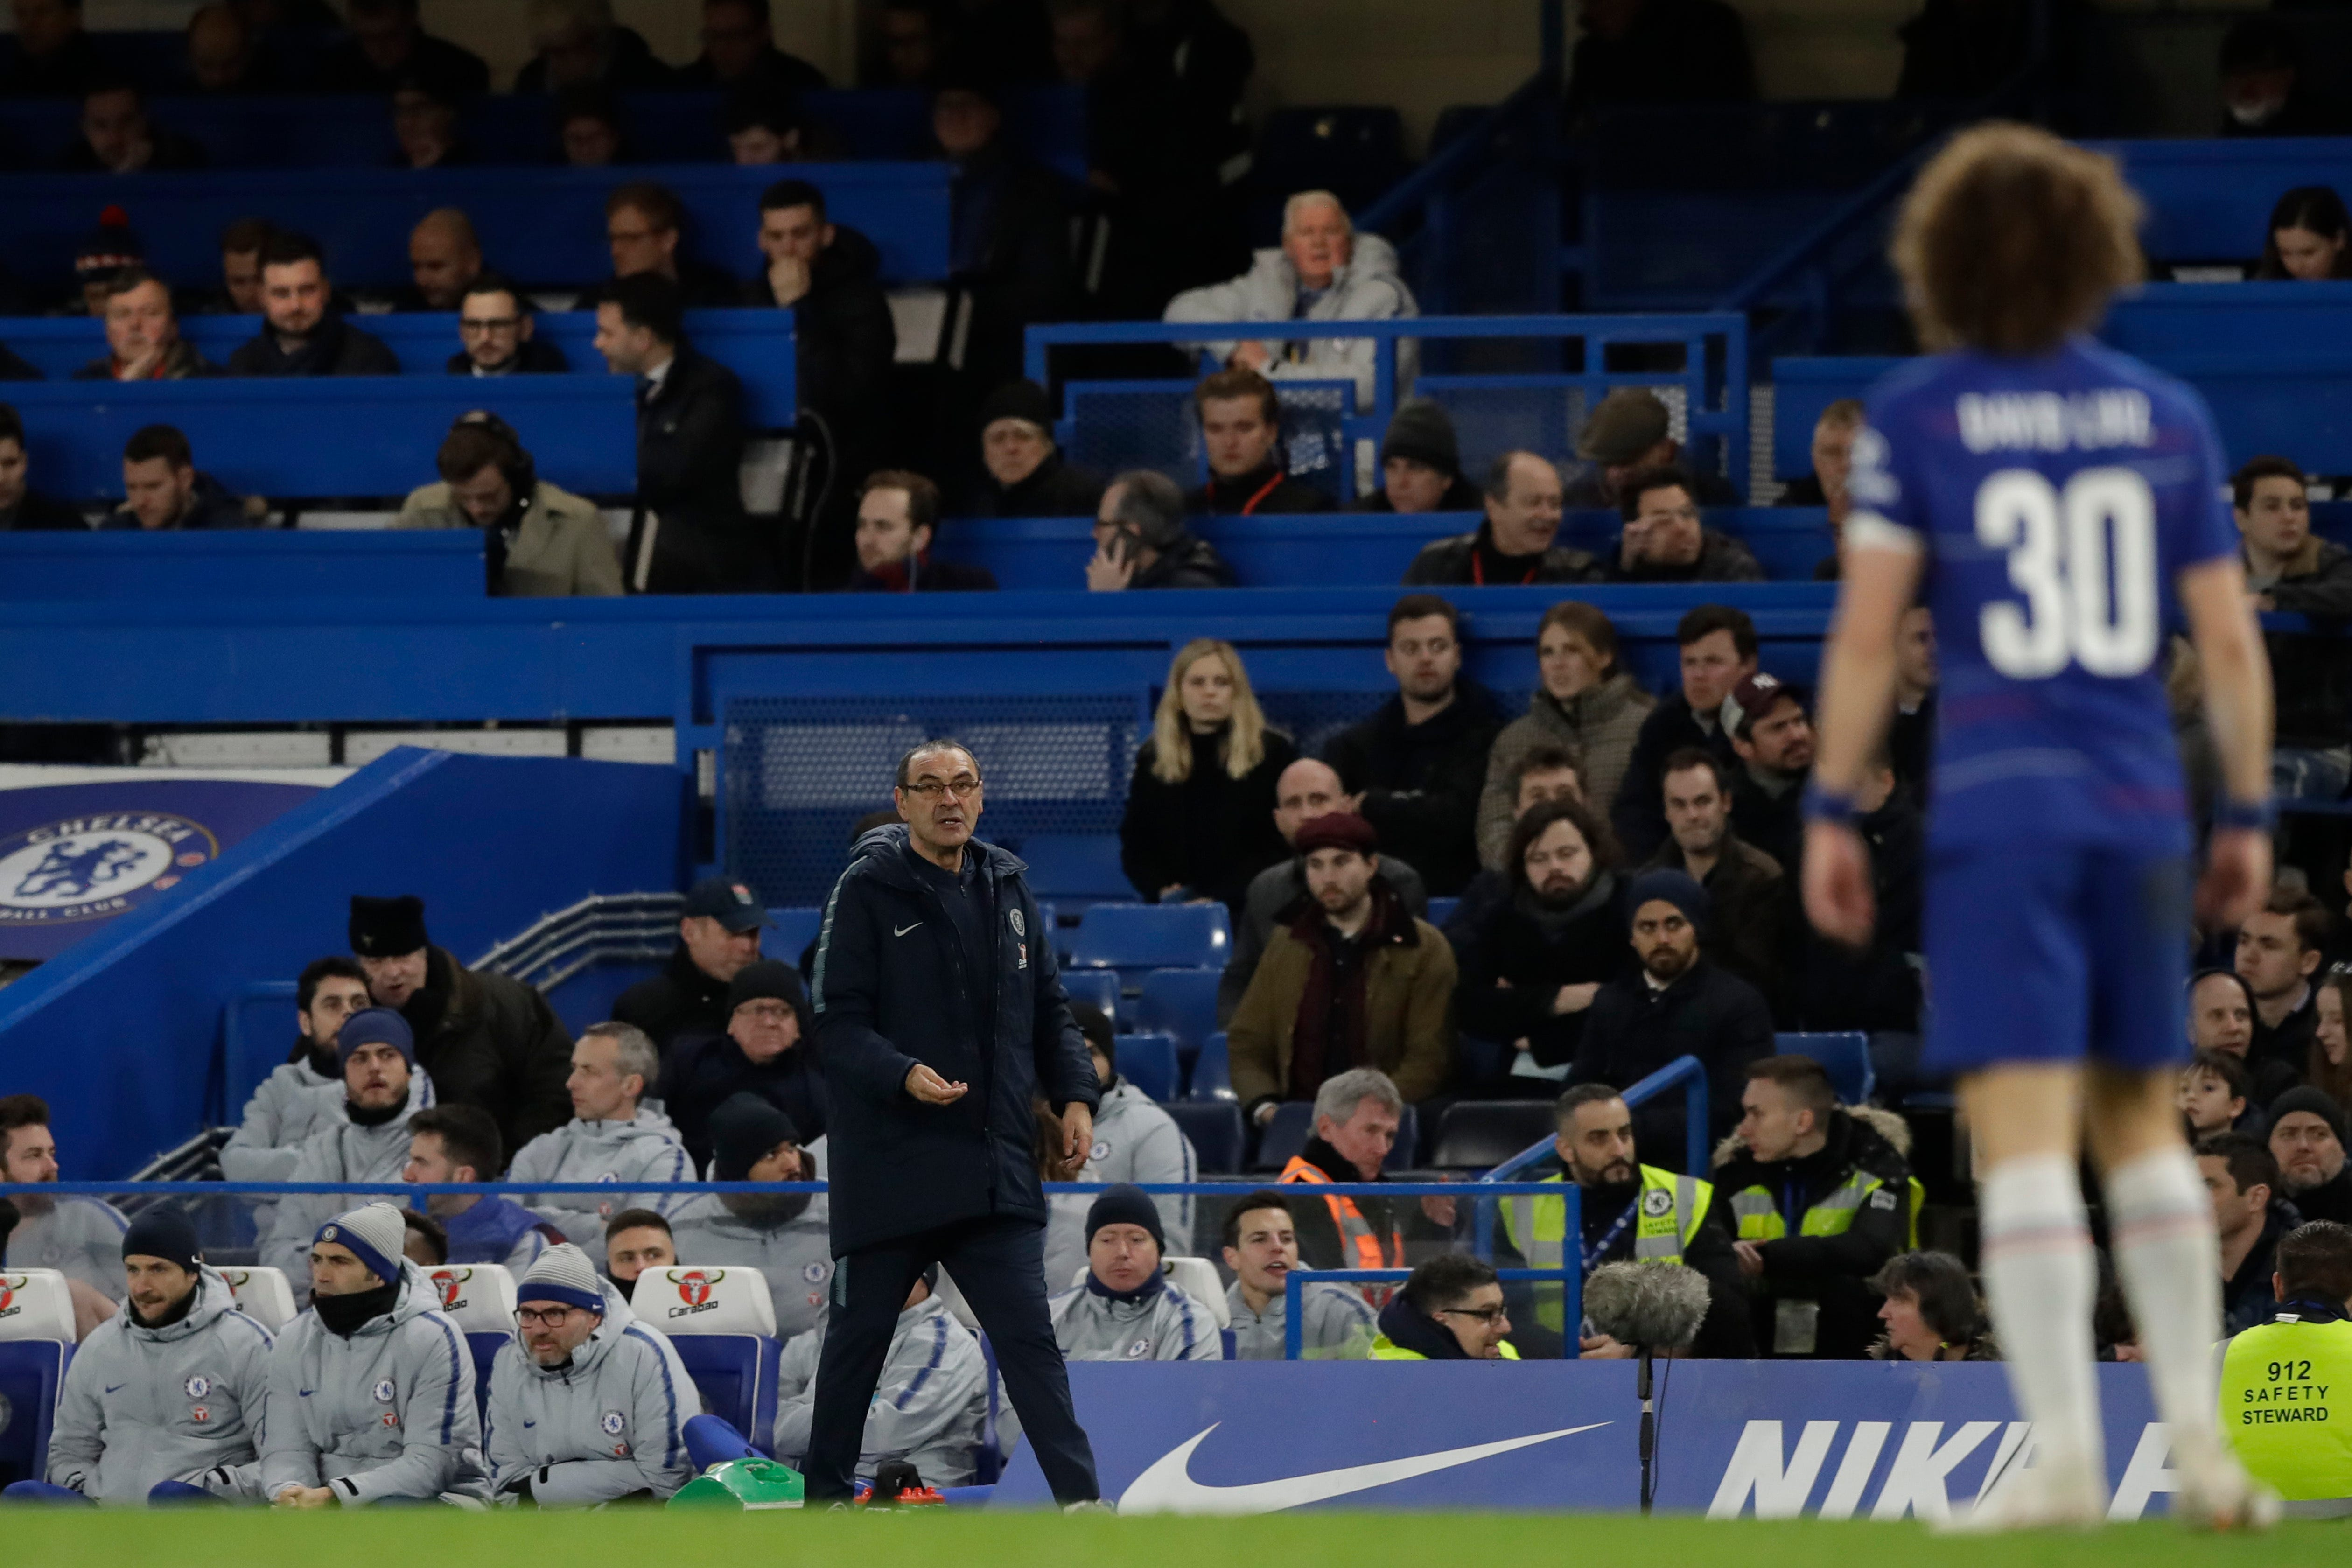 Chelsea coach Sarri looking for run of wins to appease fans